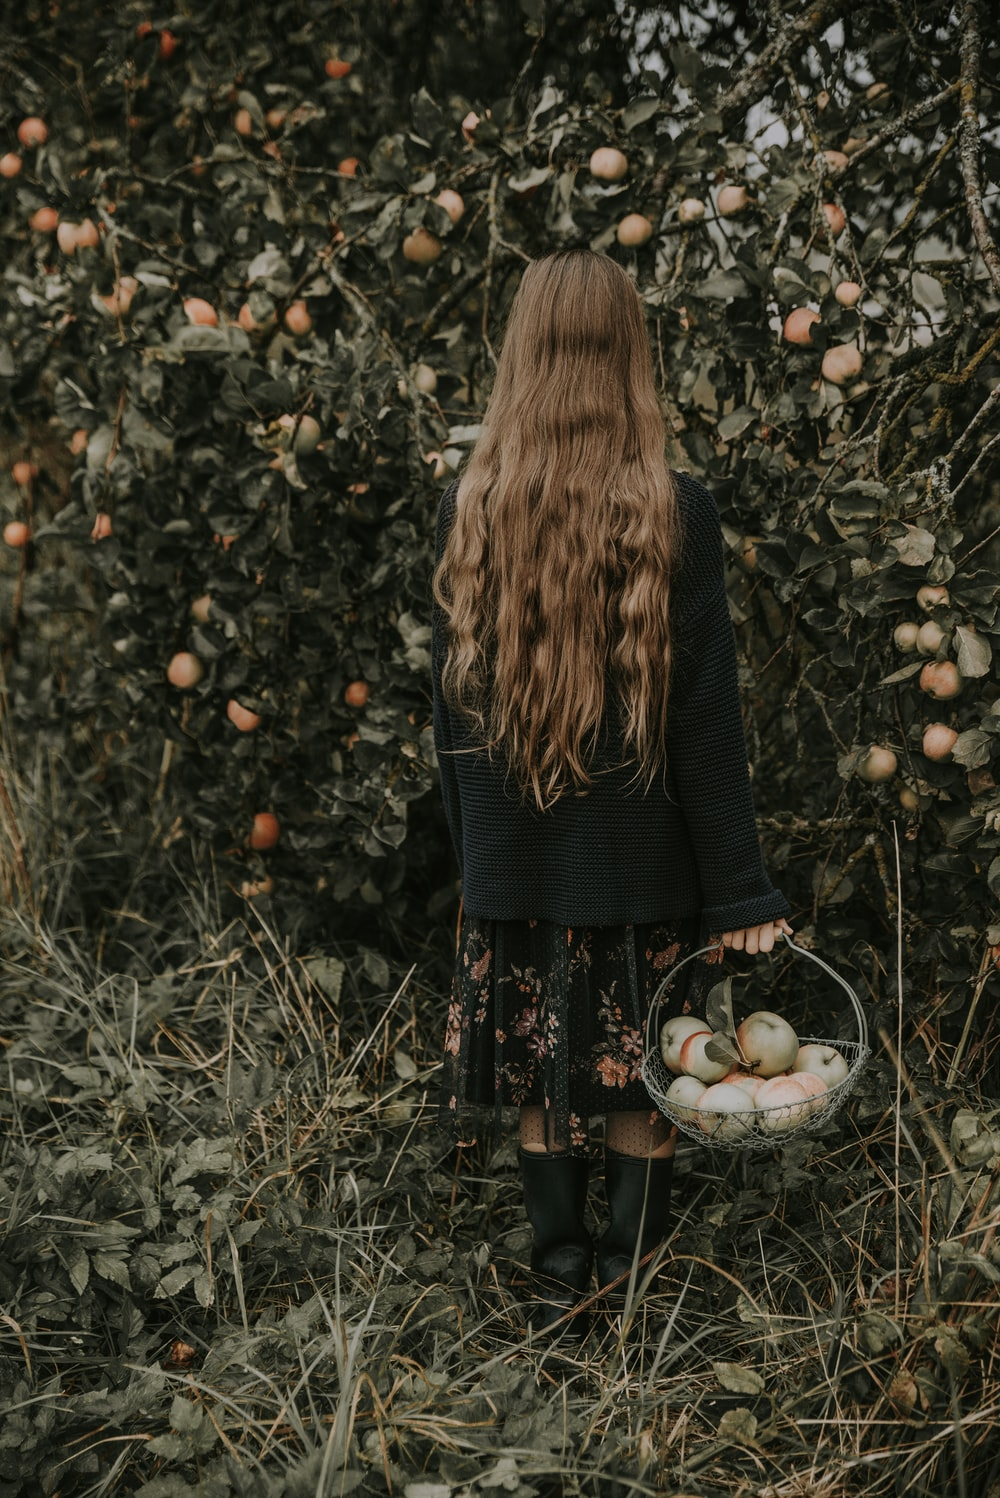 girl carrying a basket of fruits